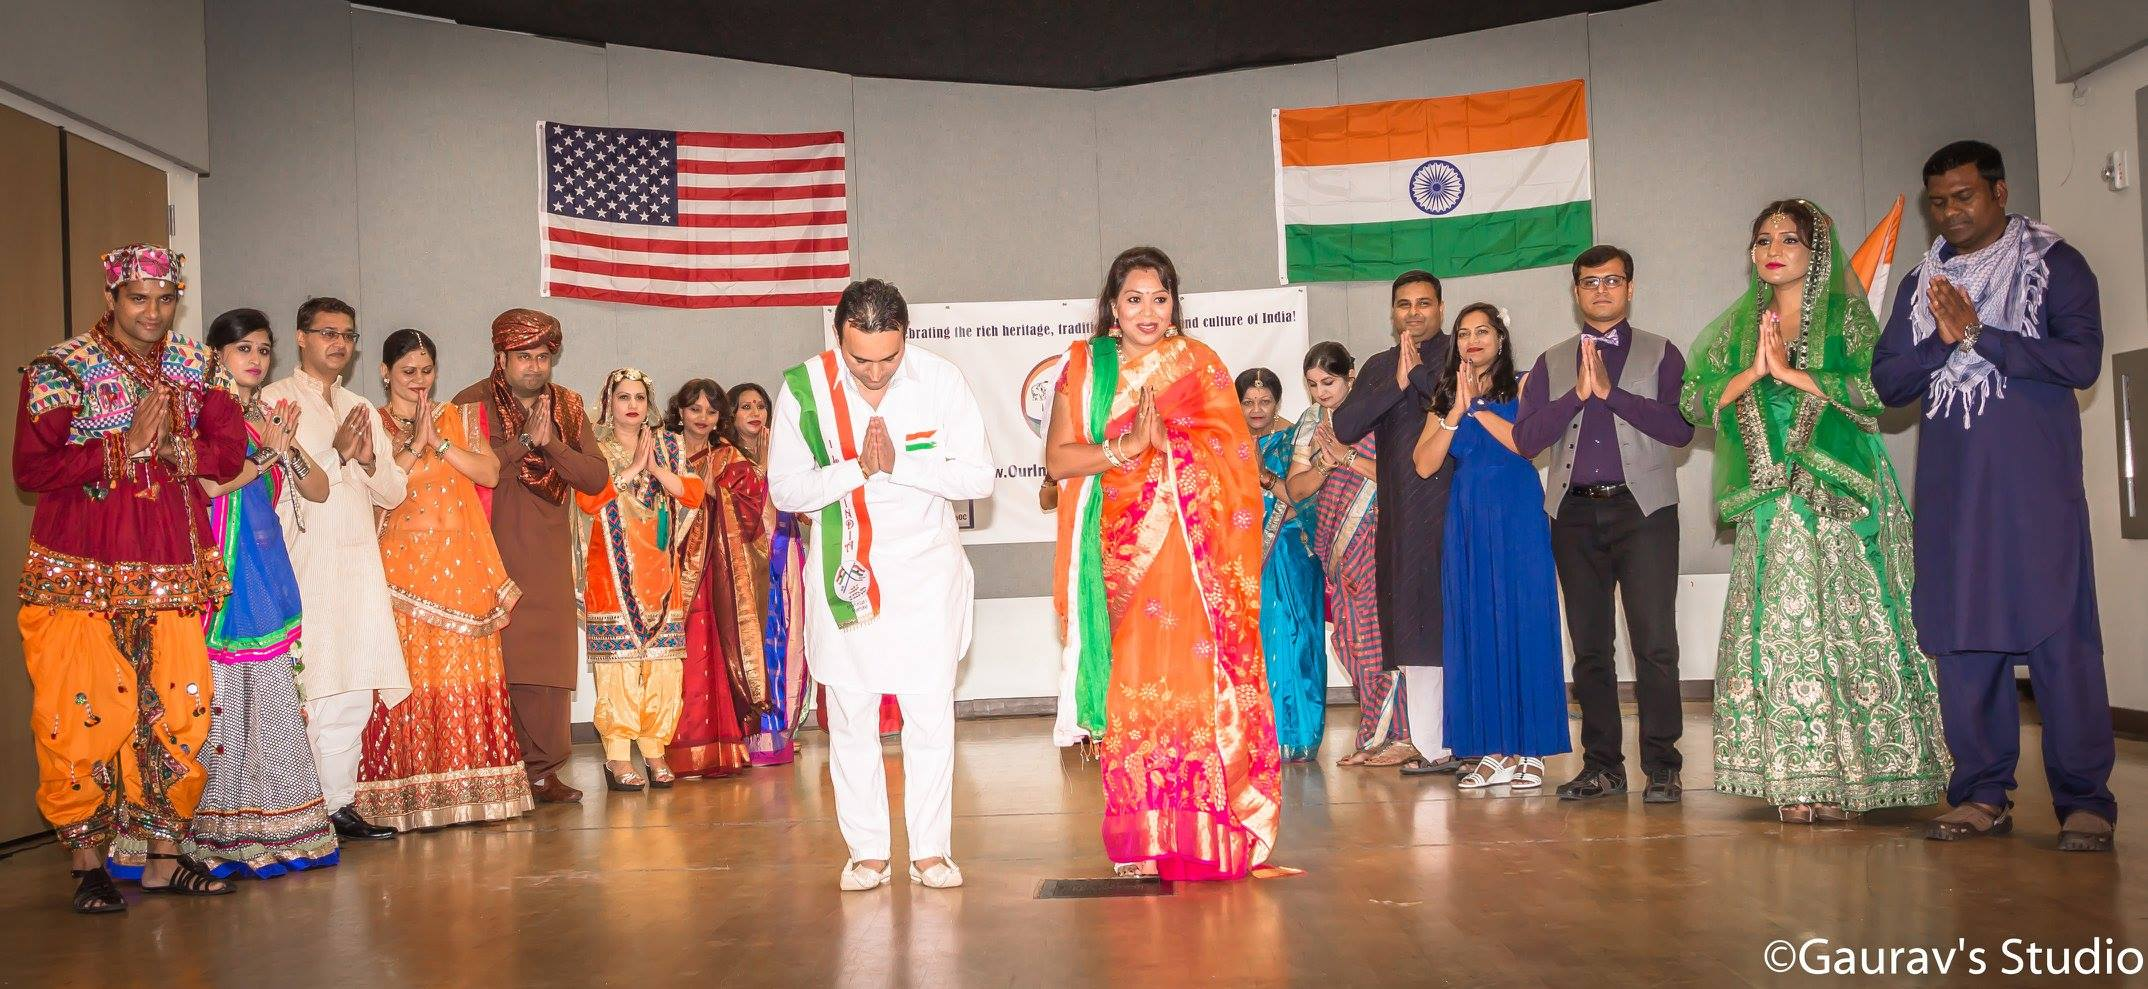 Our Indian Culture – Indian Cultural, Community, Desi and ...